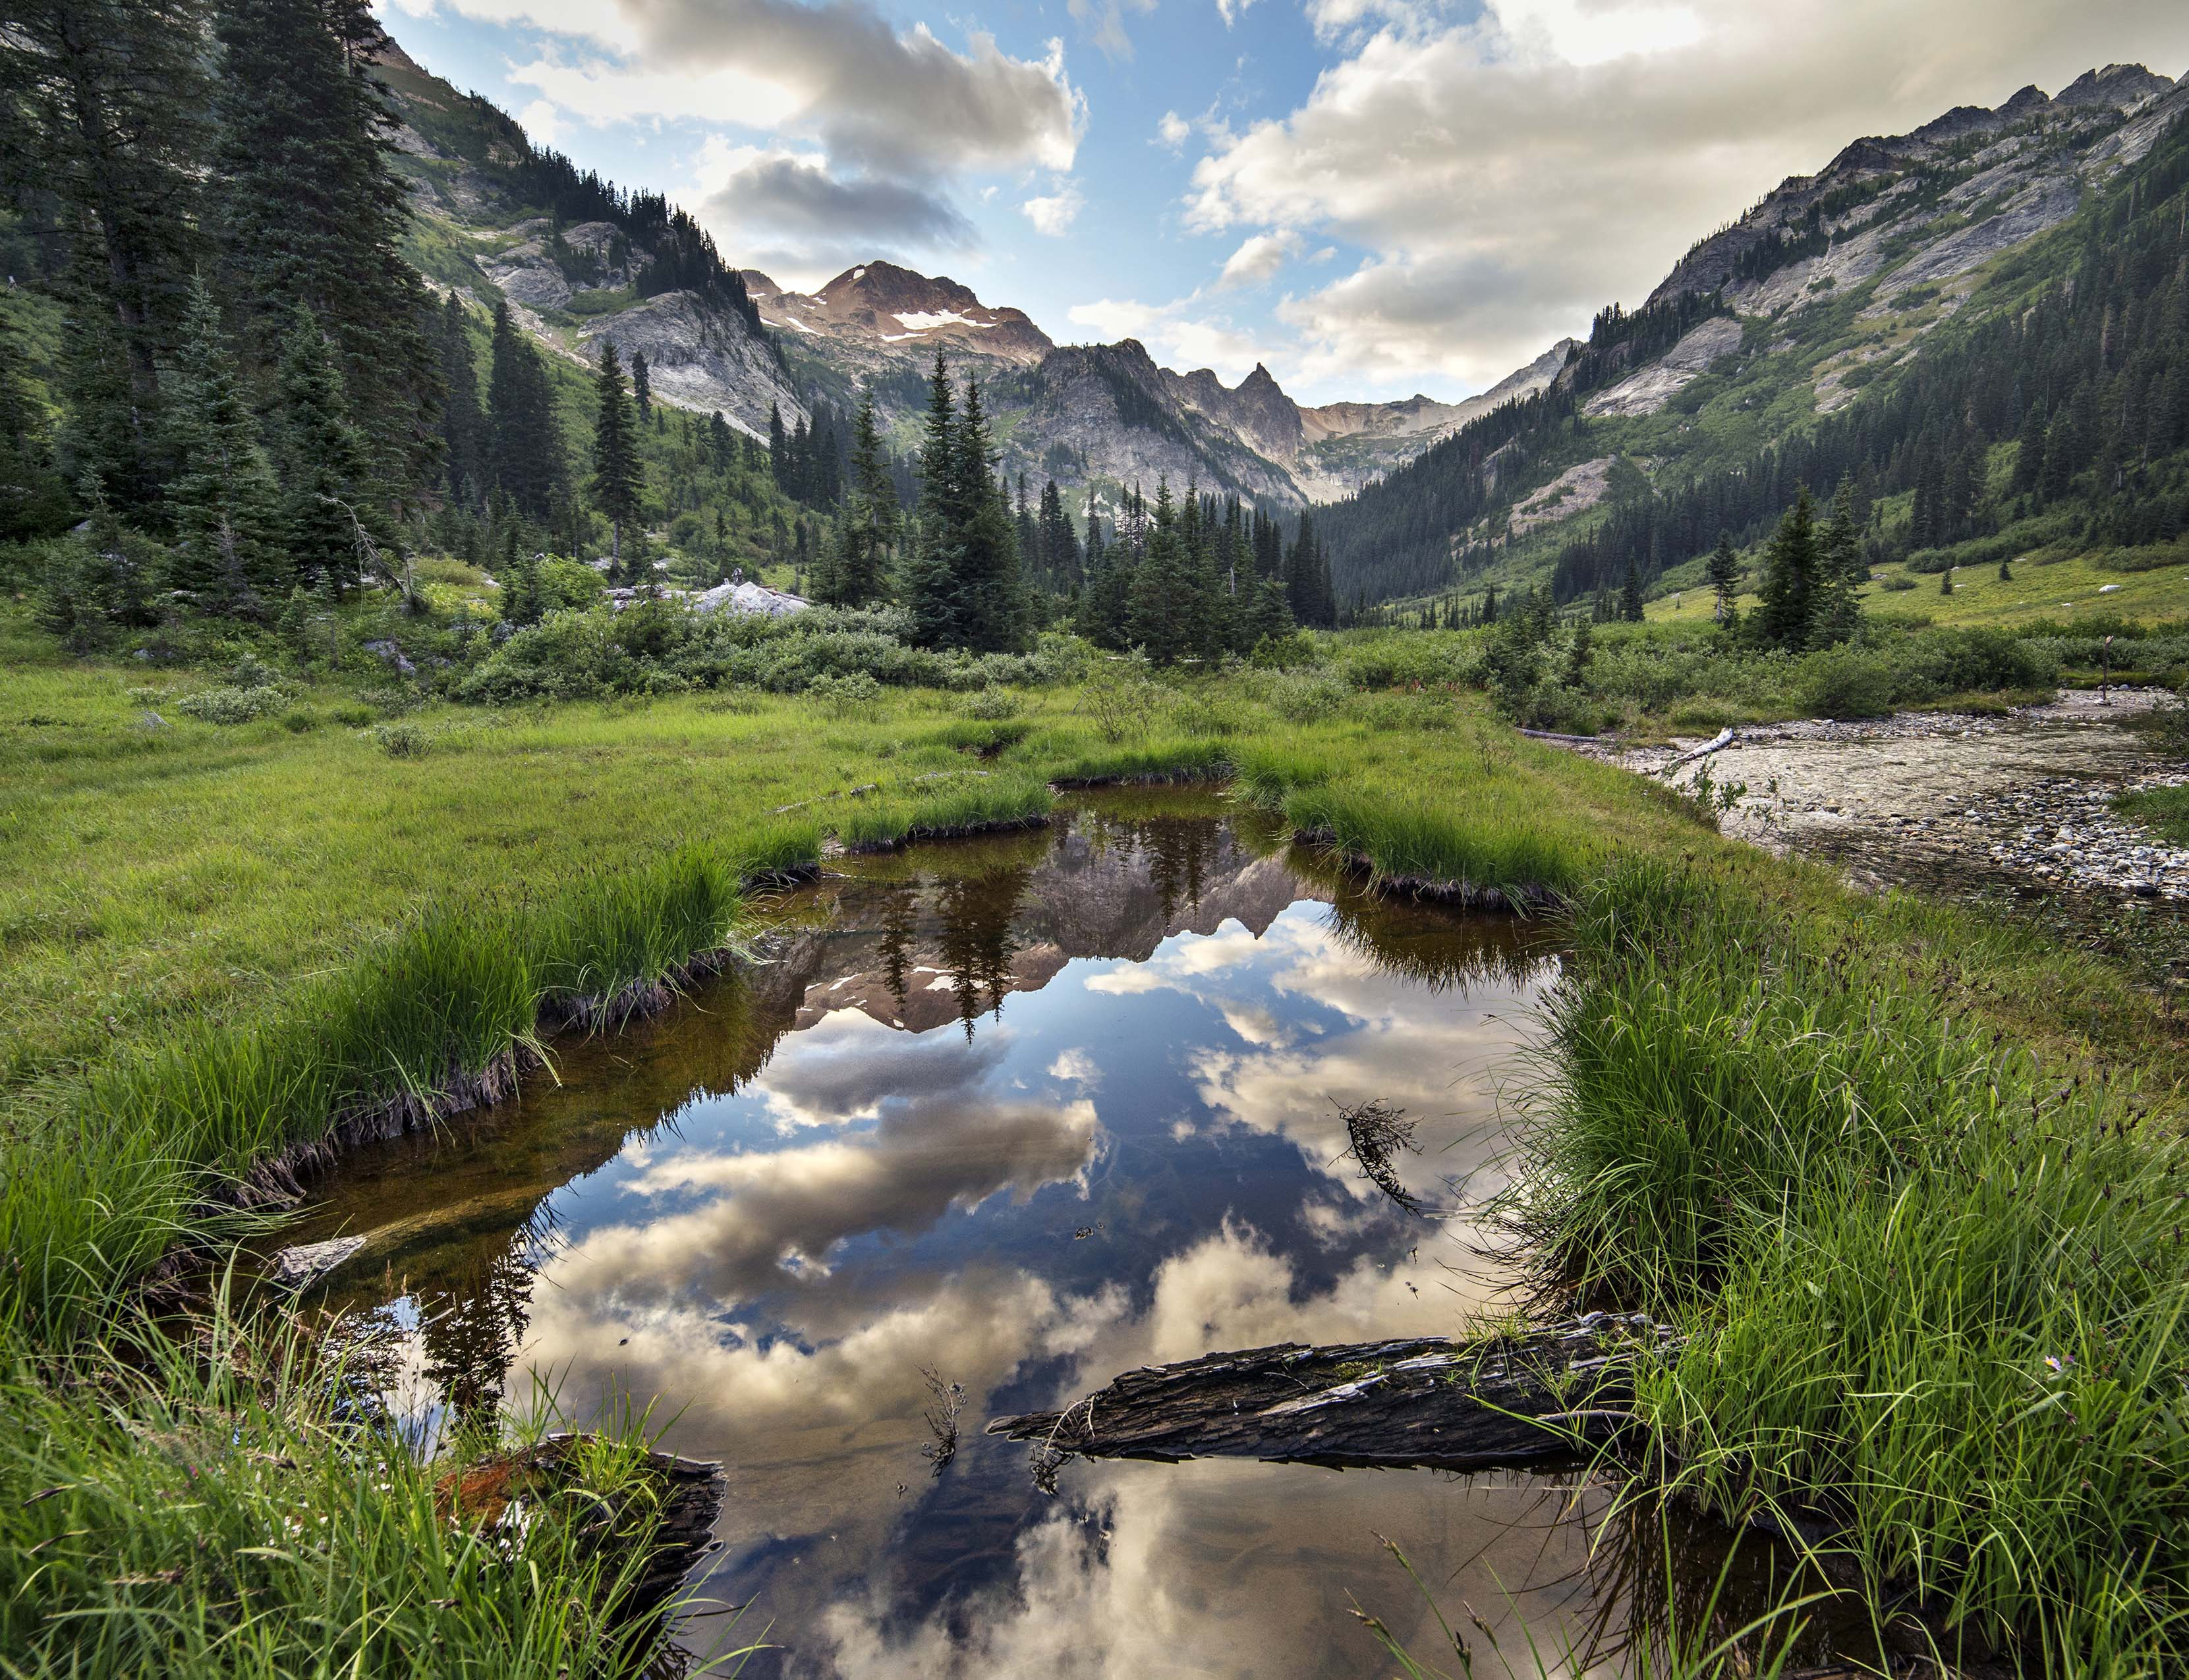 Glacier Peak Wilderness Andy Porter Images